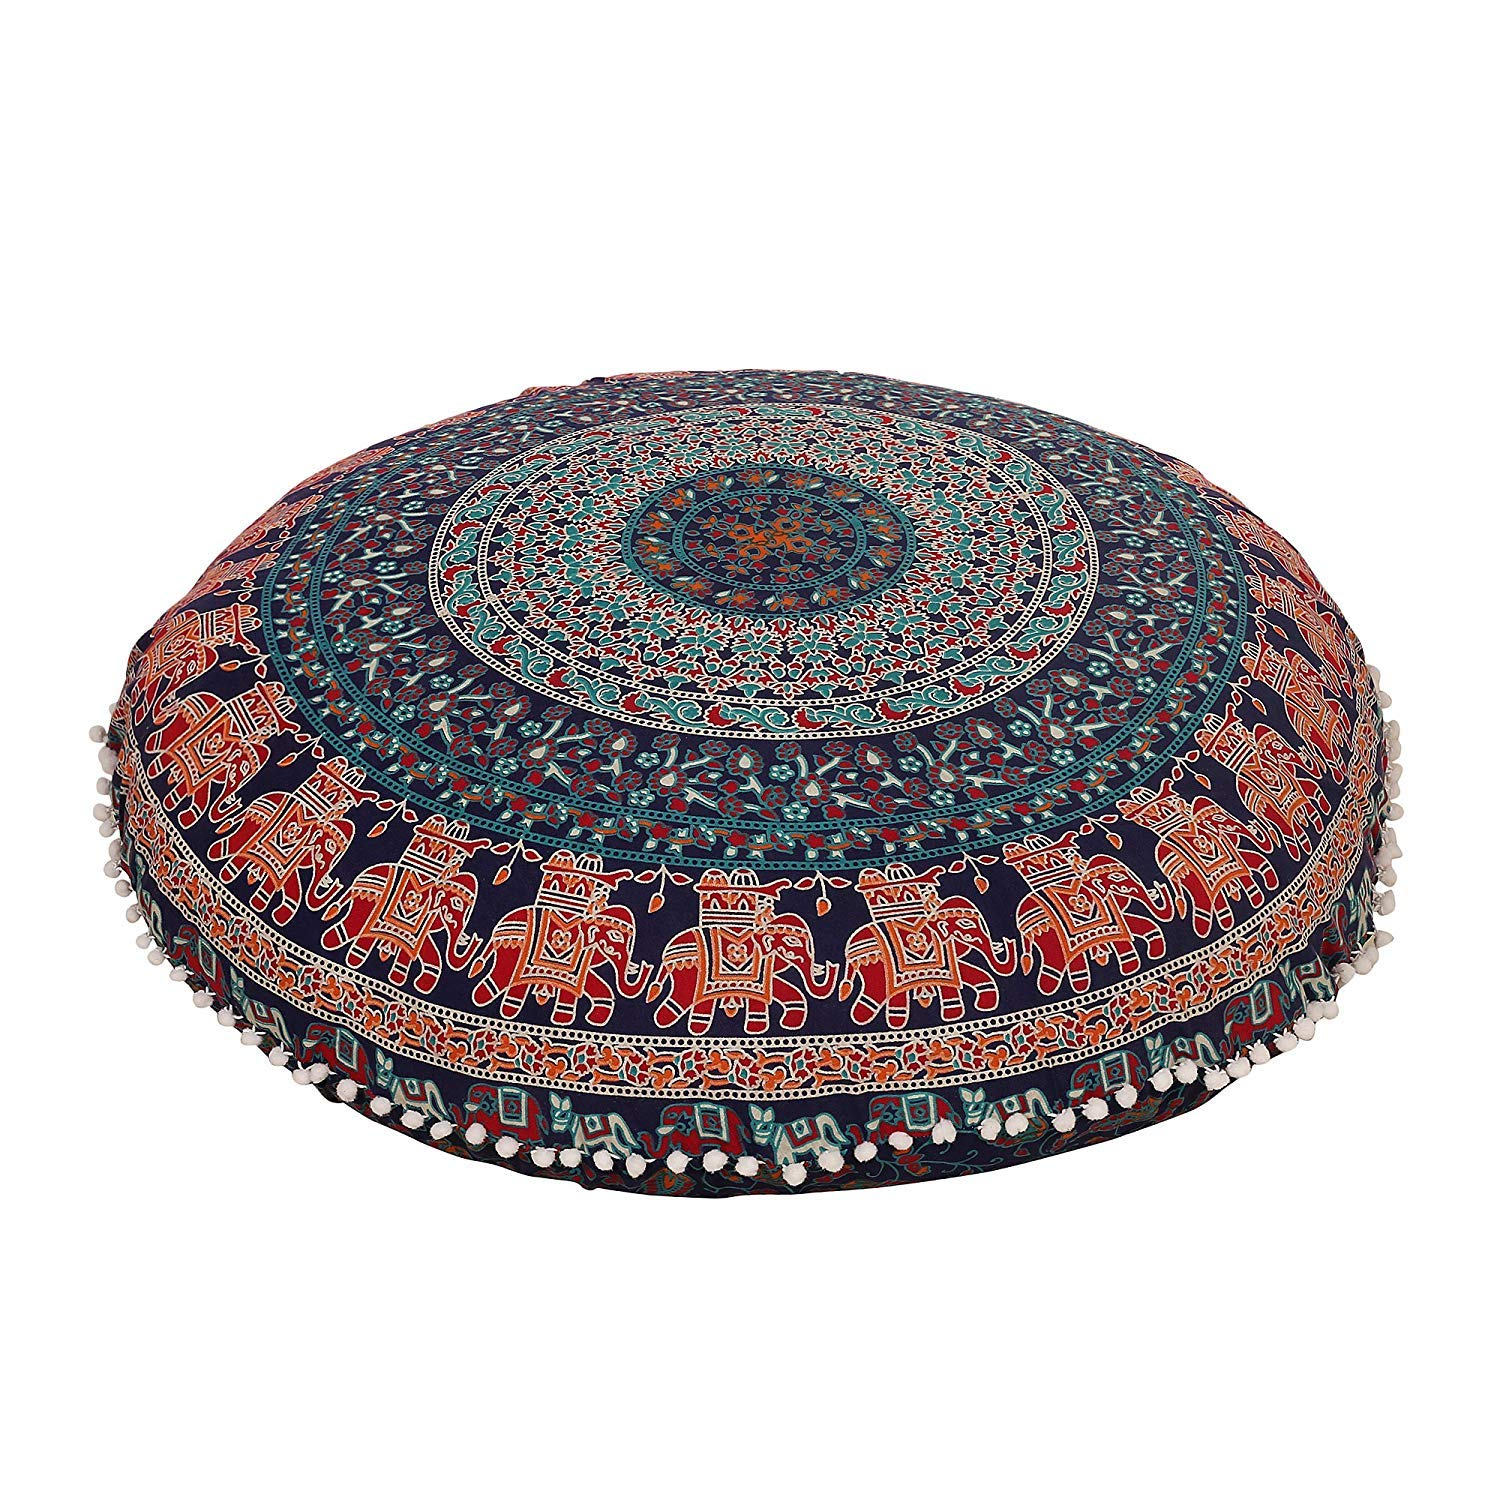 Glamorousfashion Indian Large Mandala Floor Pillow Comfortable Home Car Bed Sofa Large Mandala Floor Pillows Round Bohemian Meditation Cushion Cover Ottoman Pouf Cover Navy Blue